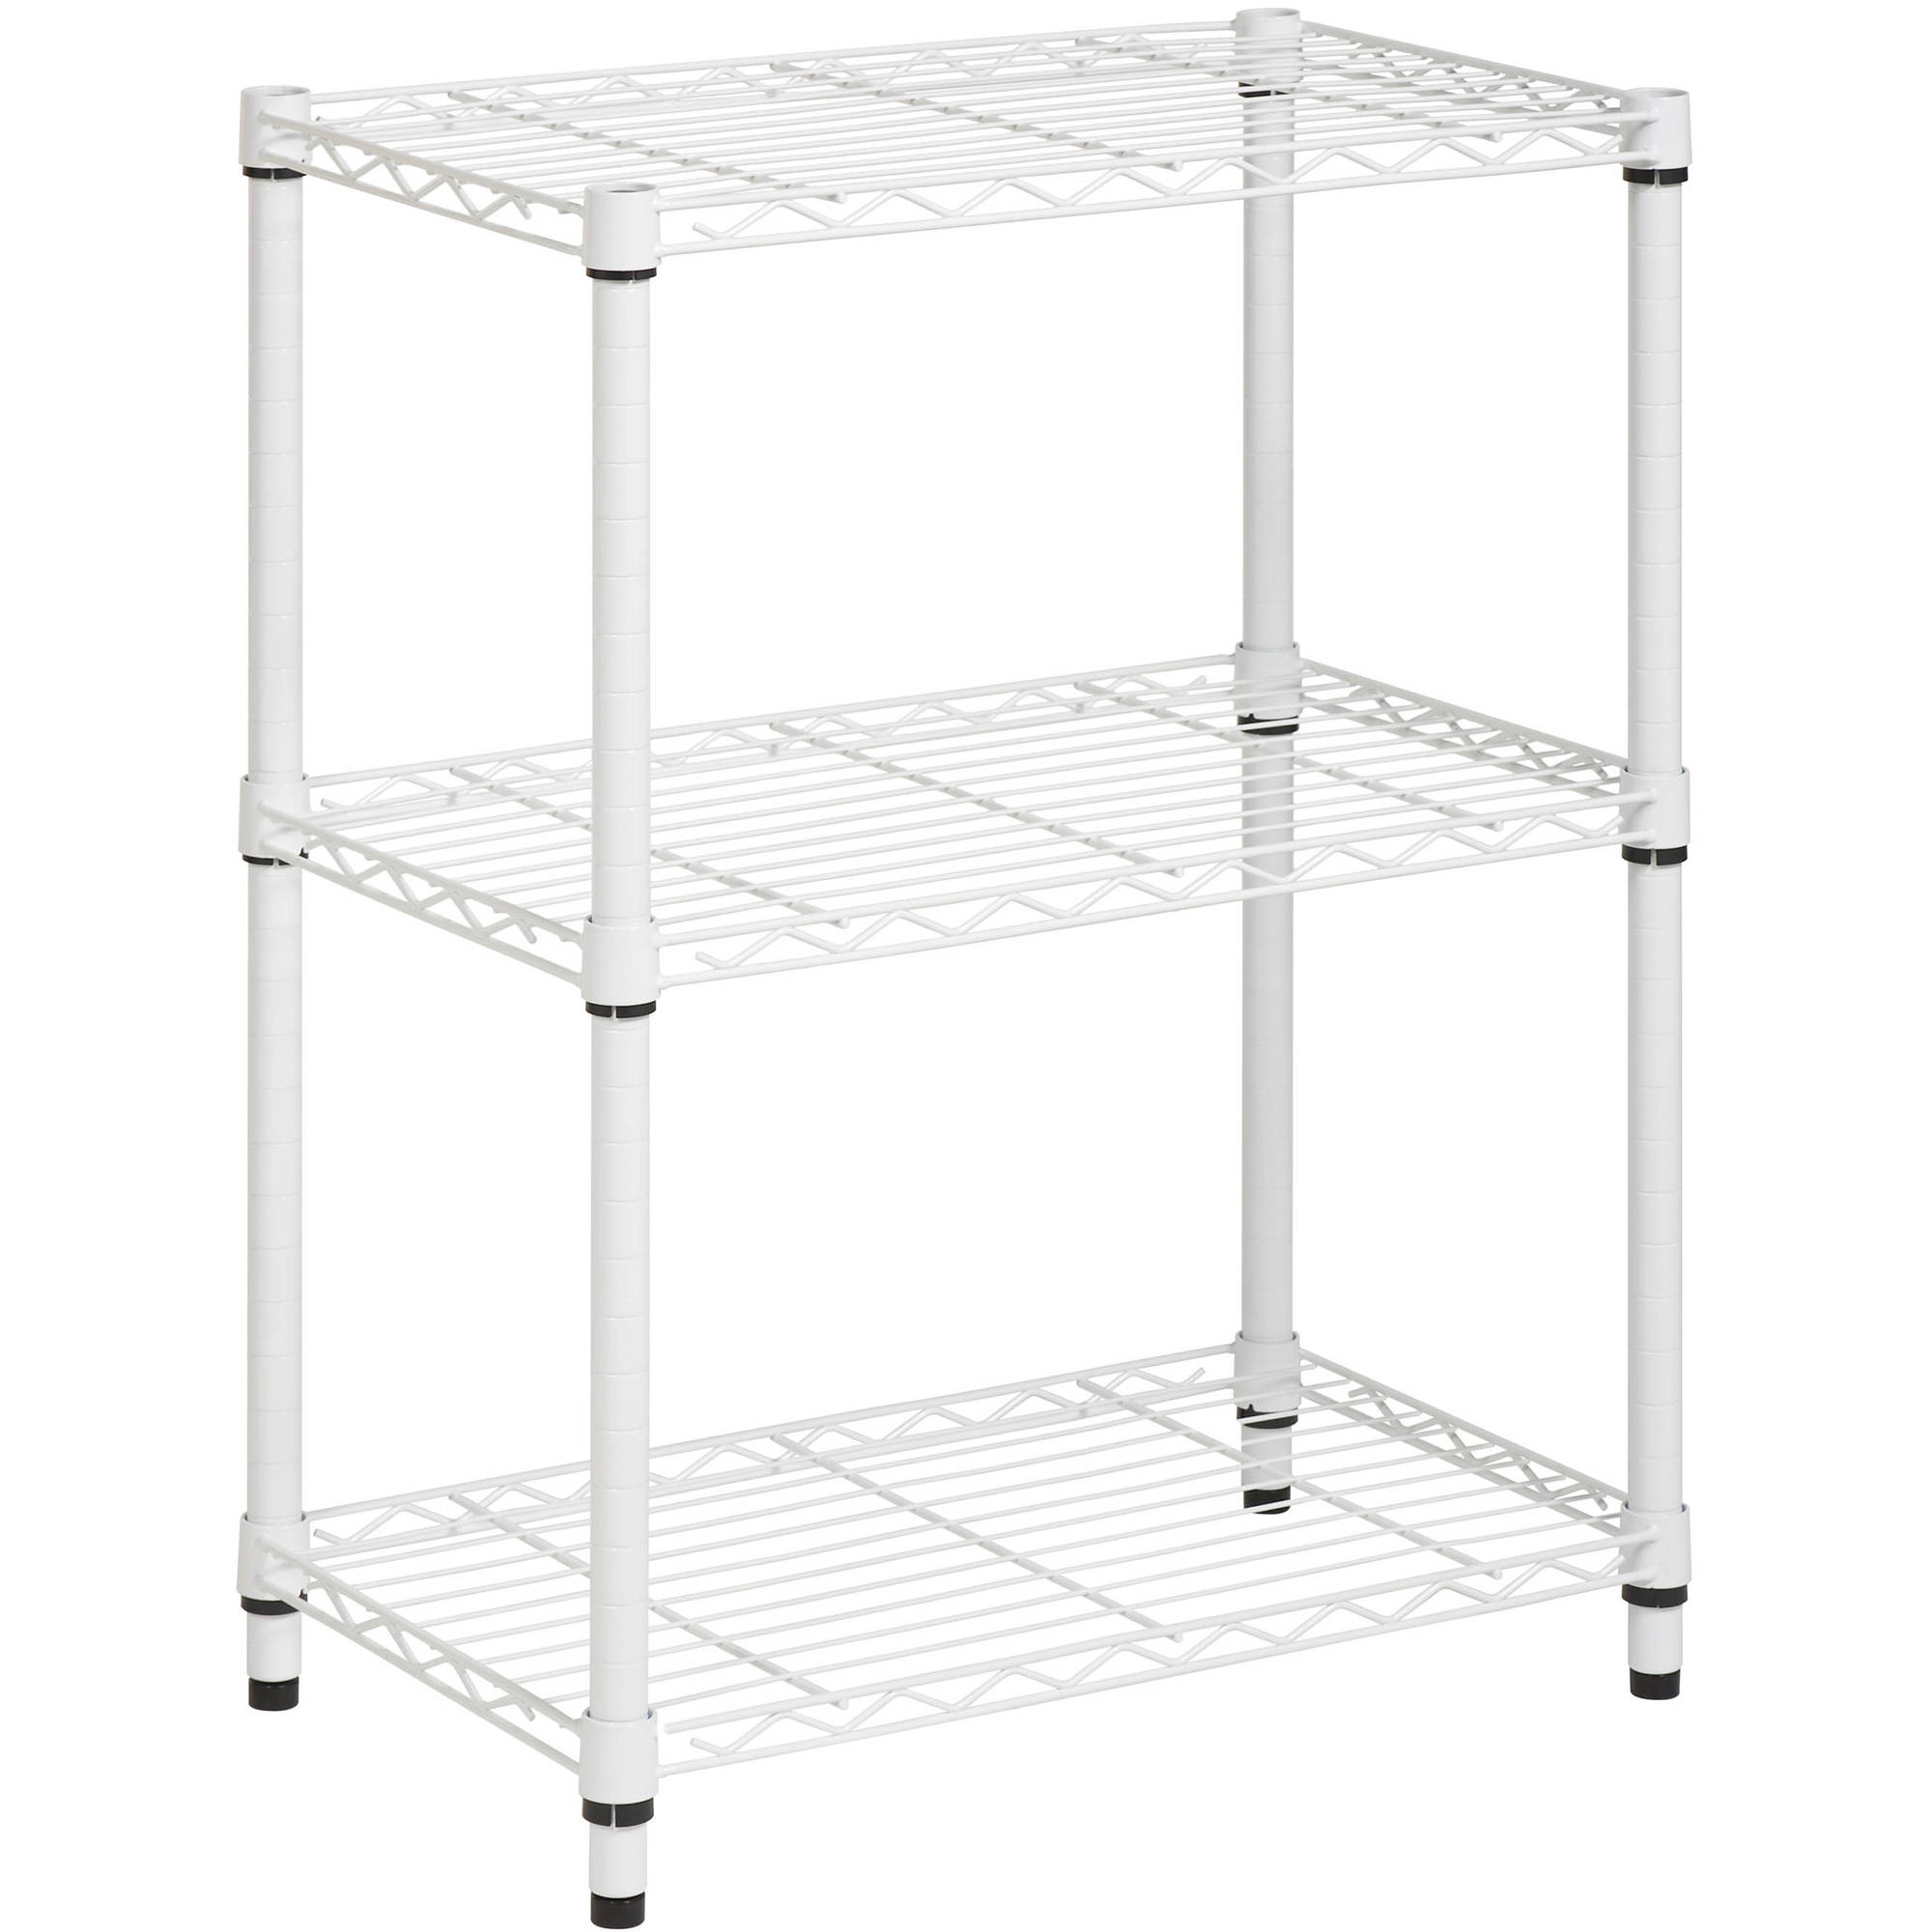 Honey Can Do 3-Shelf Steel Storage Shelving Unit, White - Walmart.com